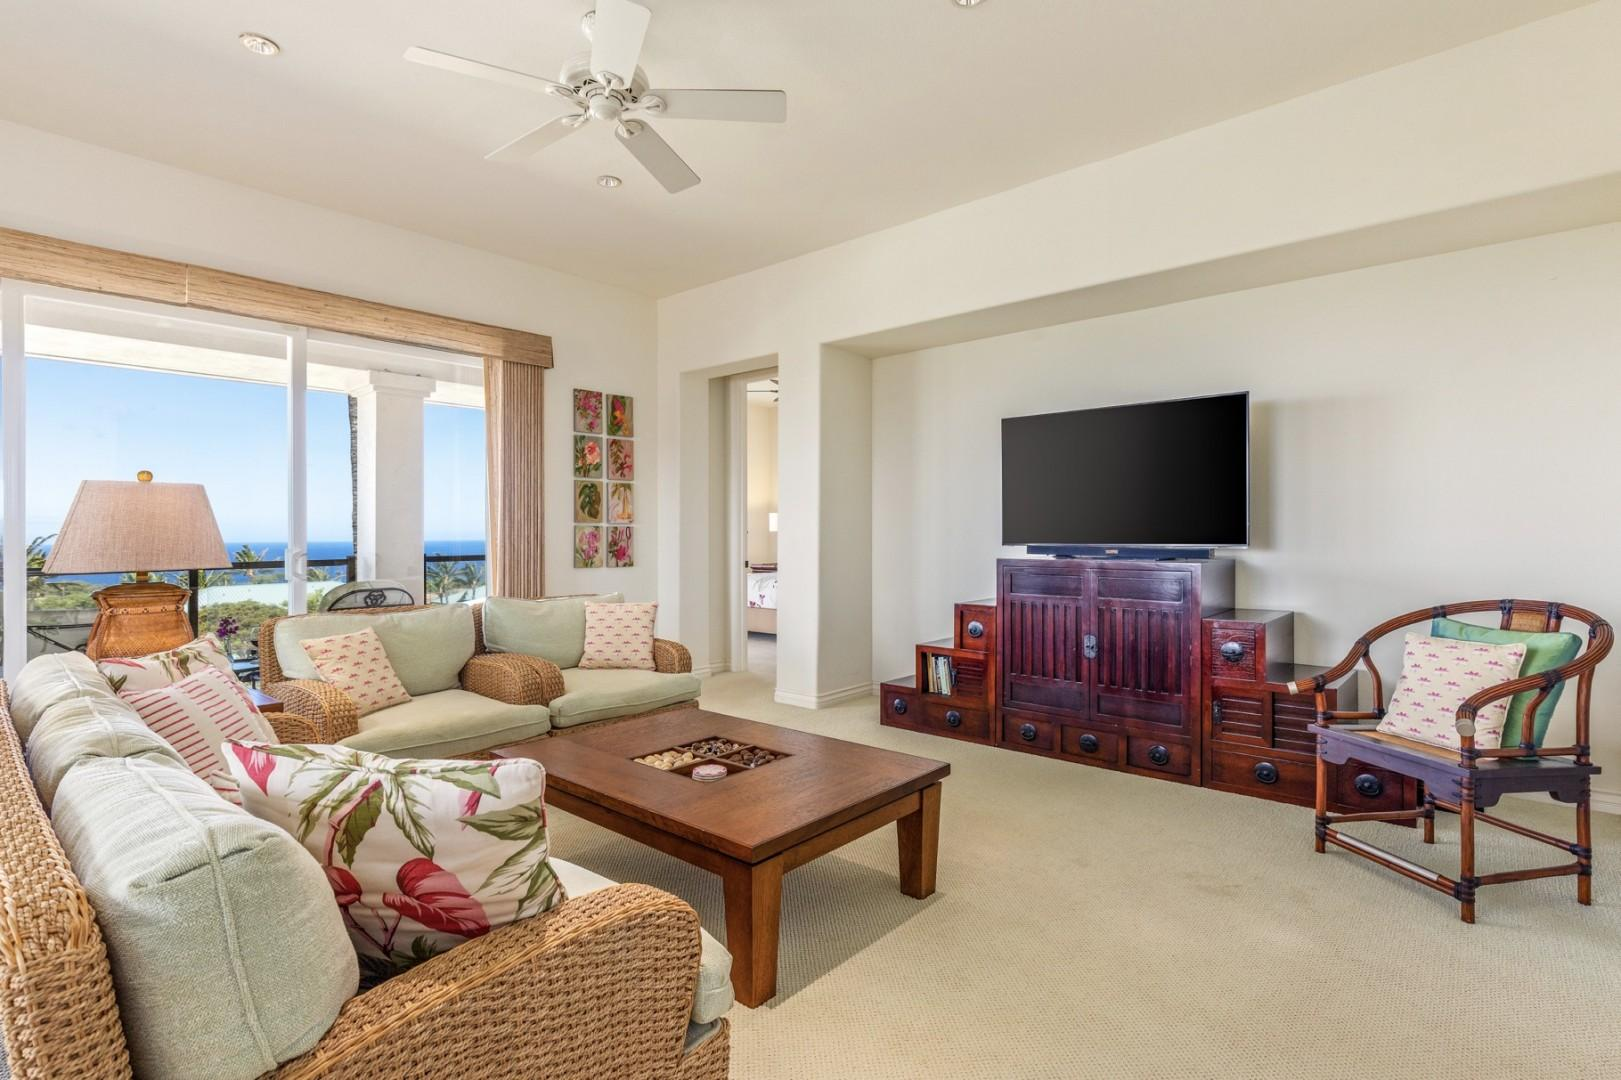 Spacious ocean view living area with lanai access and flat screen TV.